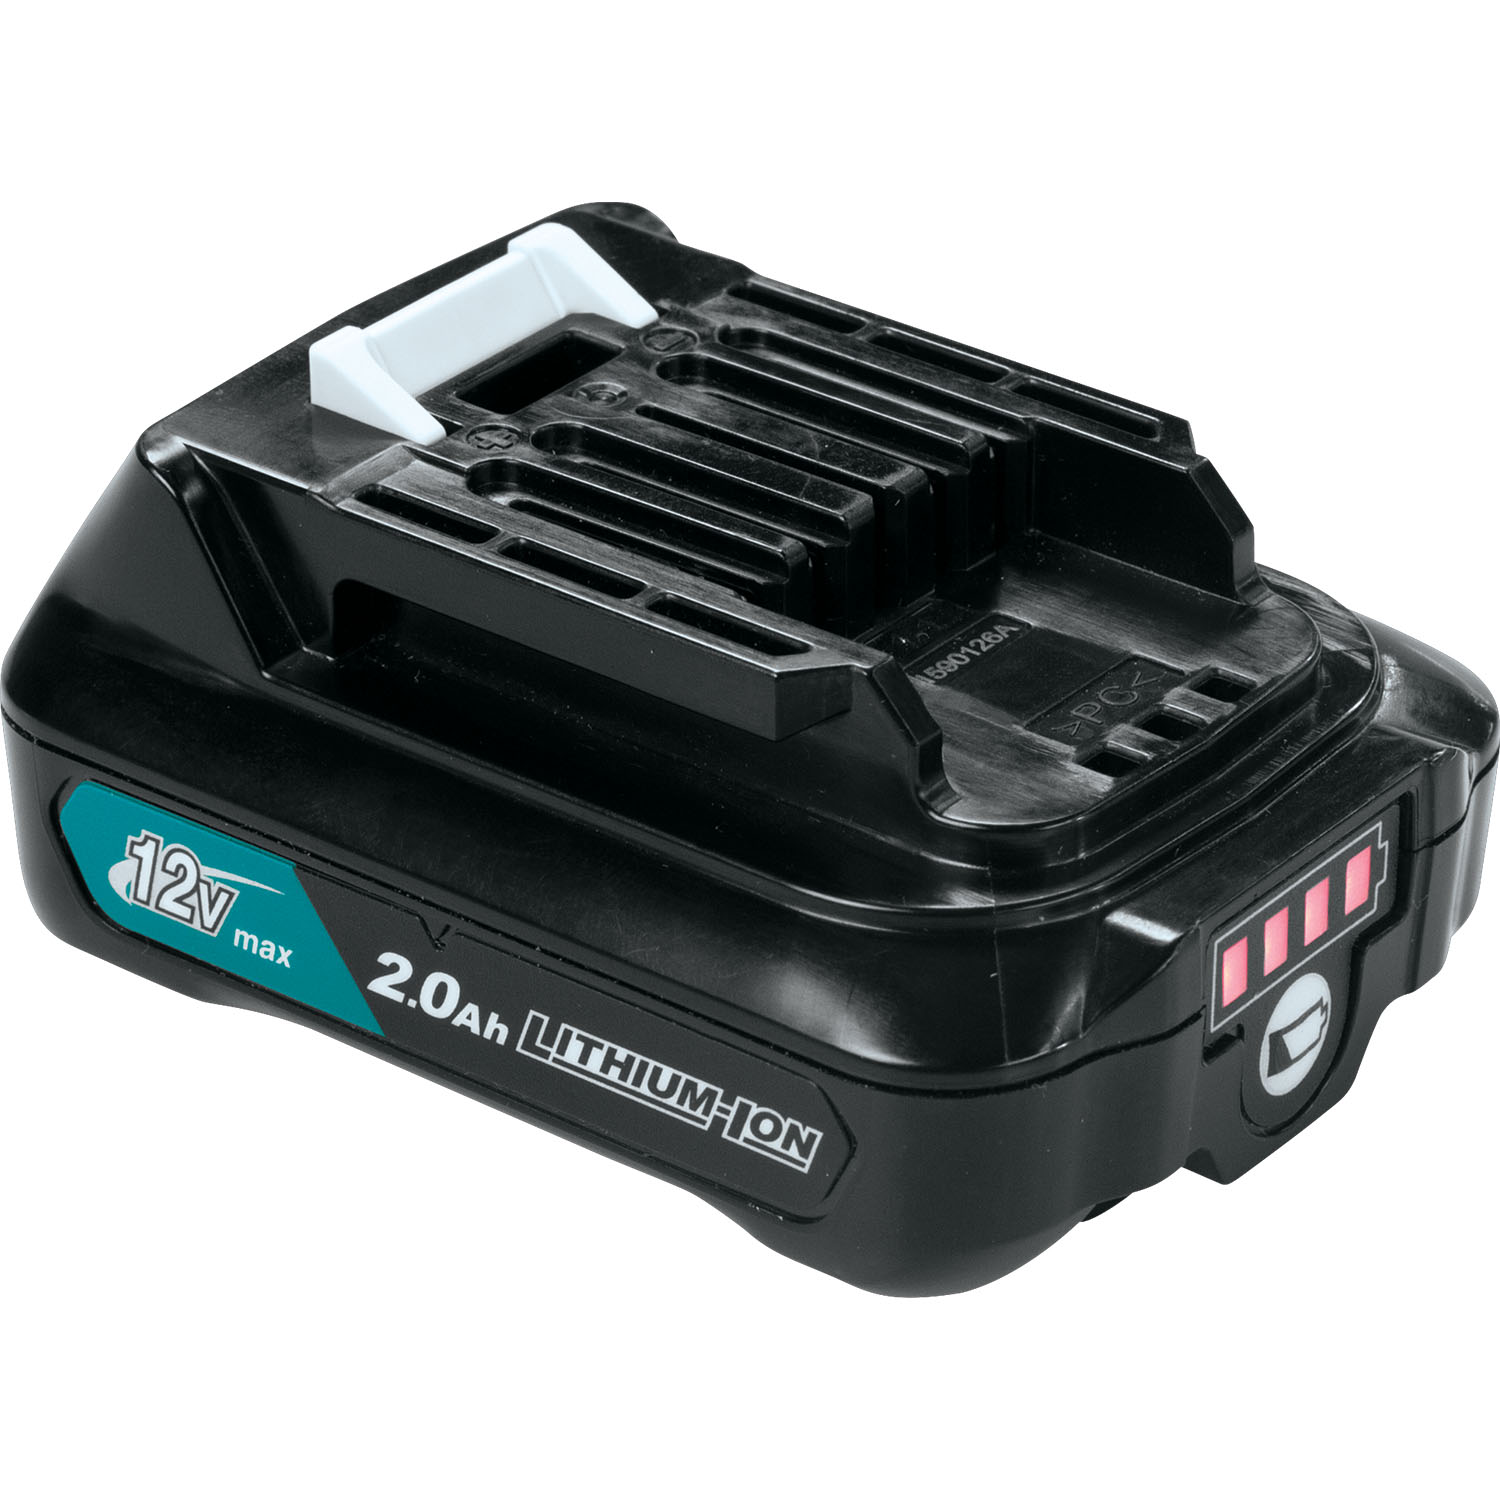 Makita 12V Max CXT™ Lithium-Ion 2.0Ah Battery